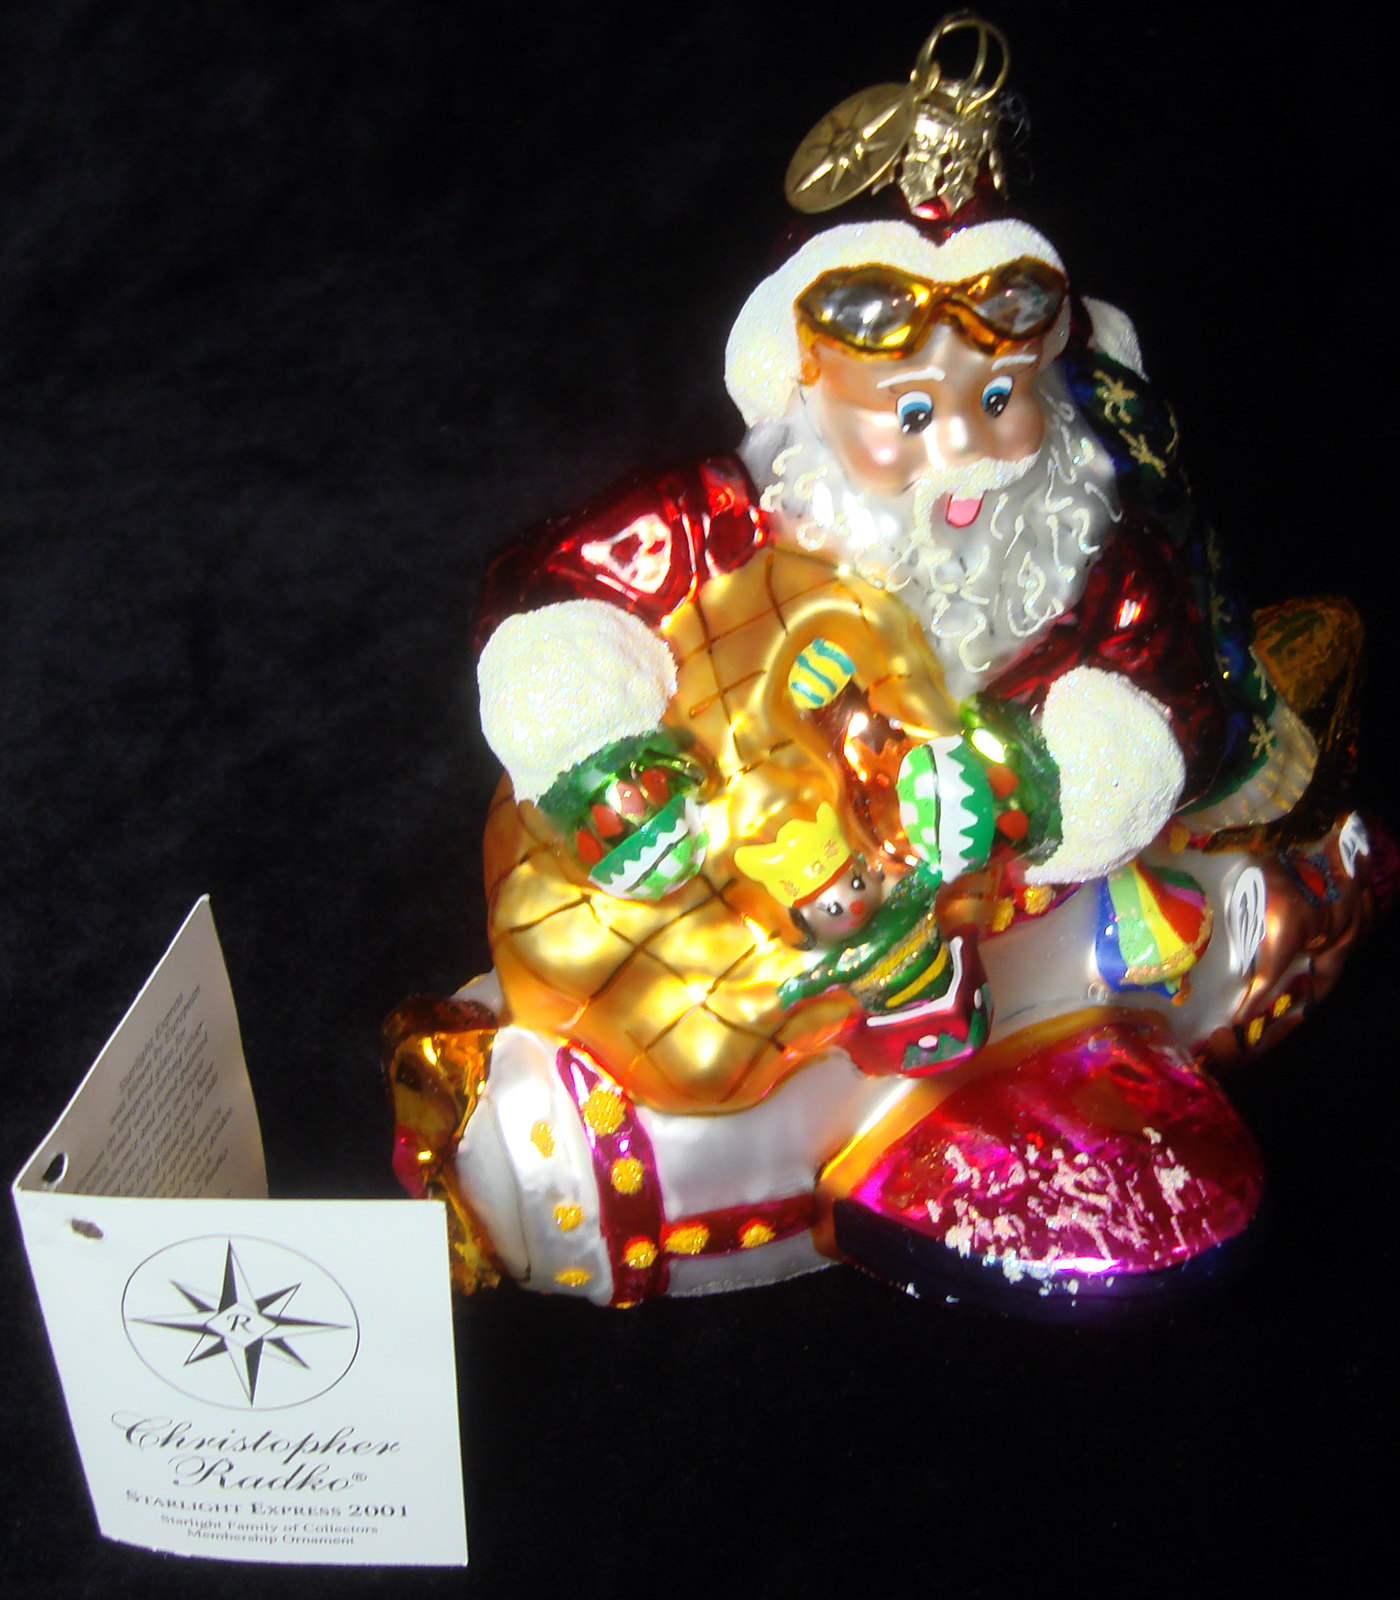 113c9f0c90c95 Details about CHRISTOPHER RADKO ORNAMENT STARLIGHT EXPRESS 01-0184-0  RETIRED RARE 01-SP-84